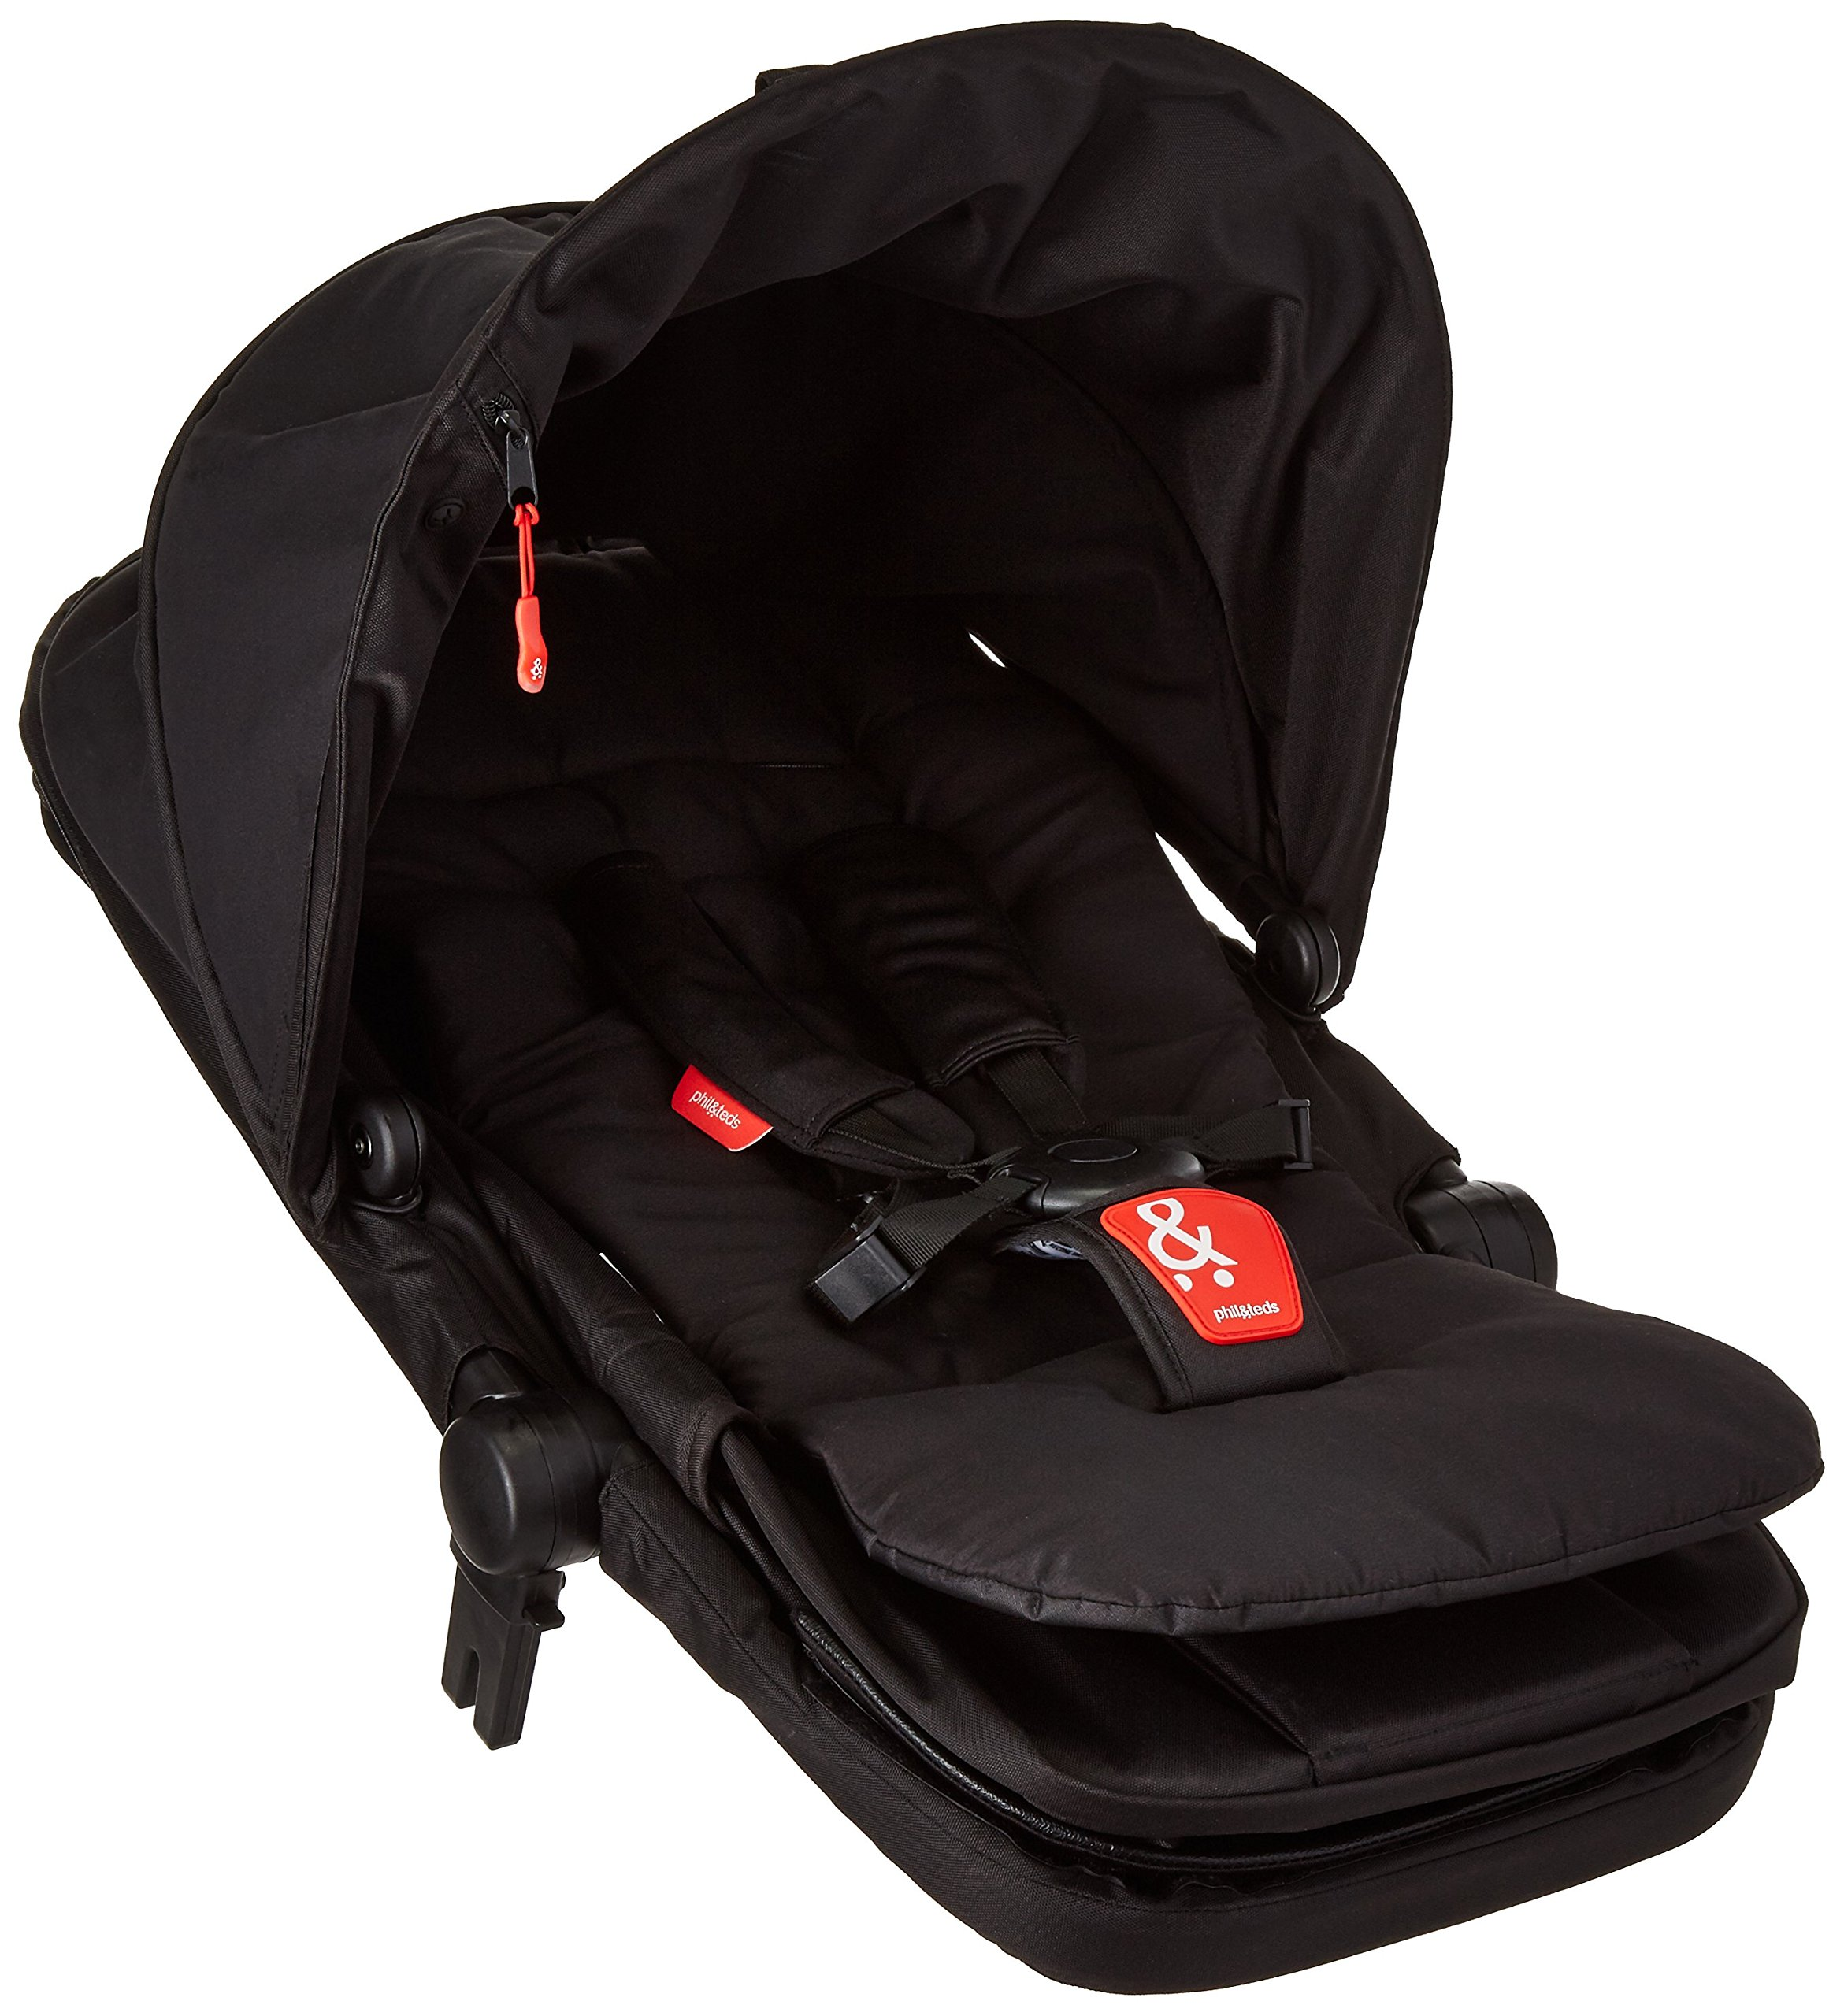 phil&teds Voyager Buggy Pushchair, Black phil&teds 4-in-1 modular seat! the most adaptable seat yet with four modes, parent facing, forward facing, lie Revolutionary stand fold with 2 seats on. Adjustable handlebar with hand-mounted brake Double kit easily converts to lie flat mode as well. 6